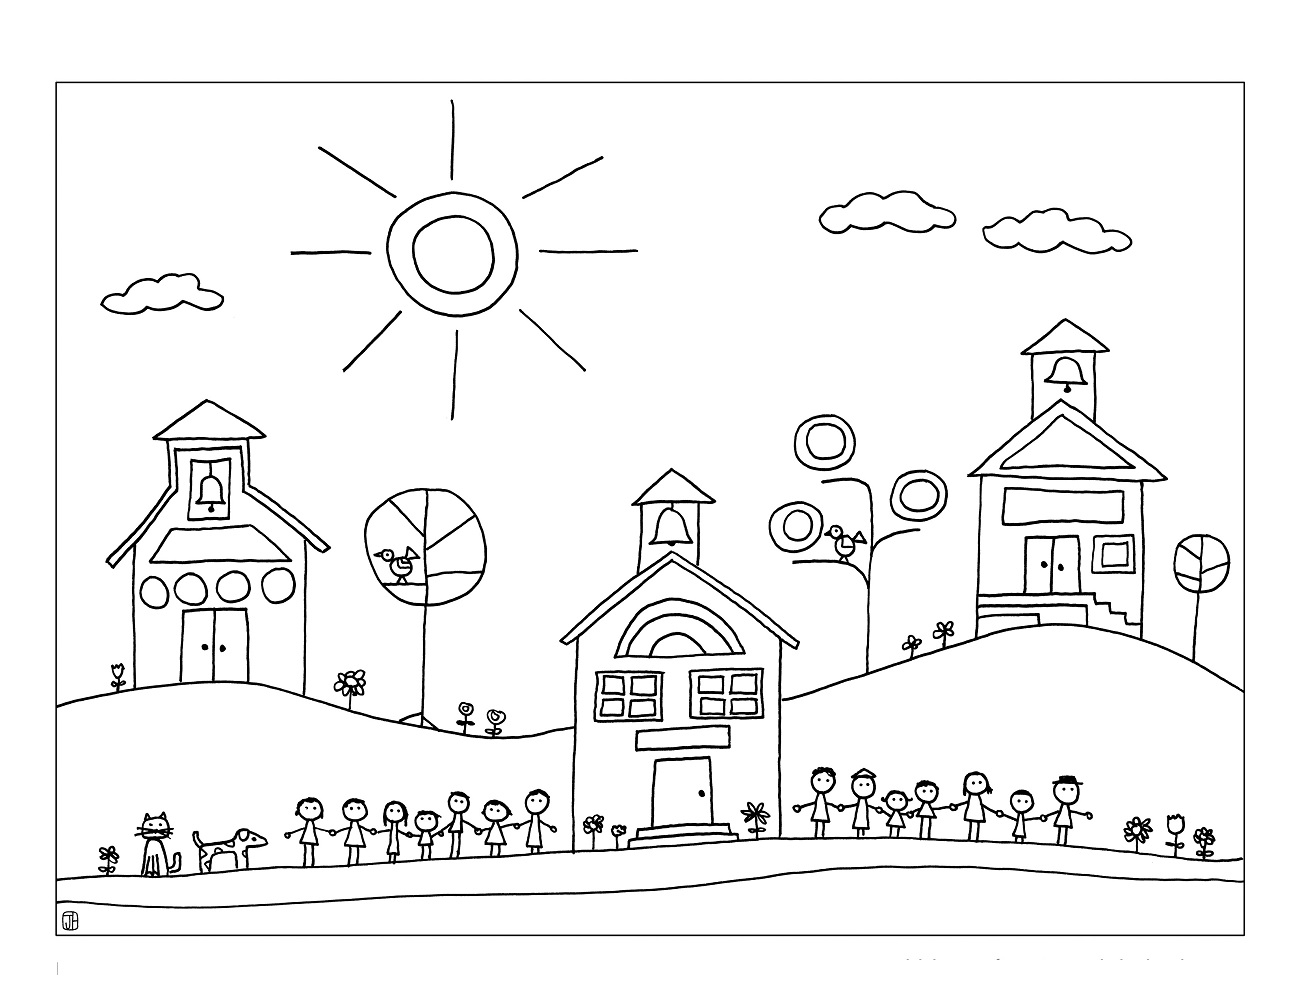 elementary school coloring pages - photo#7